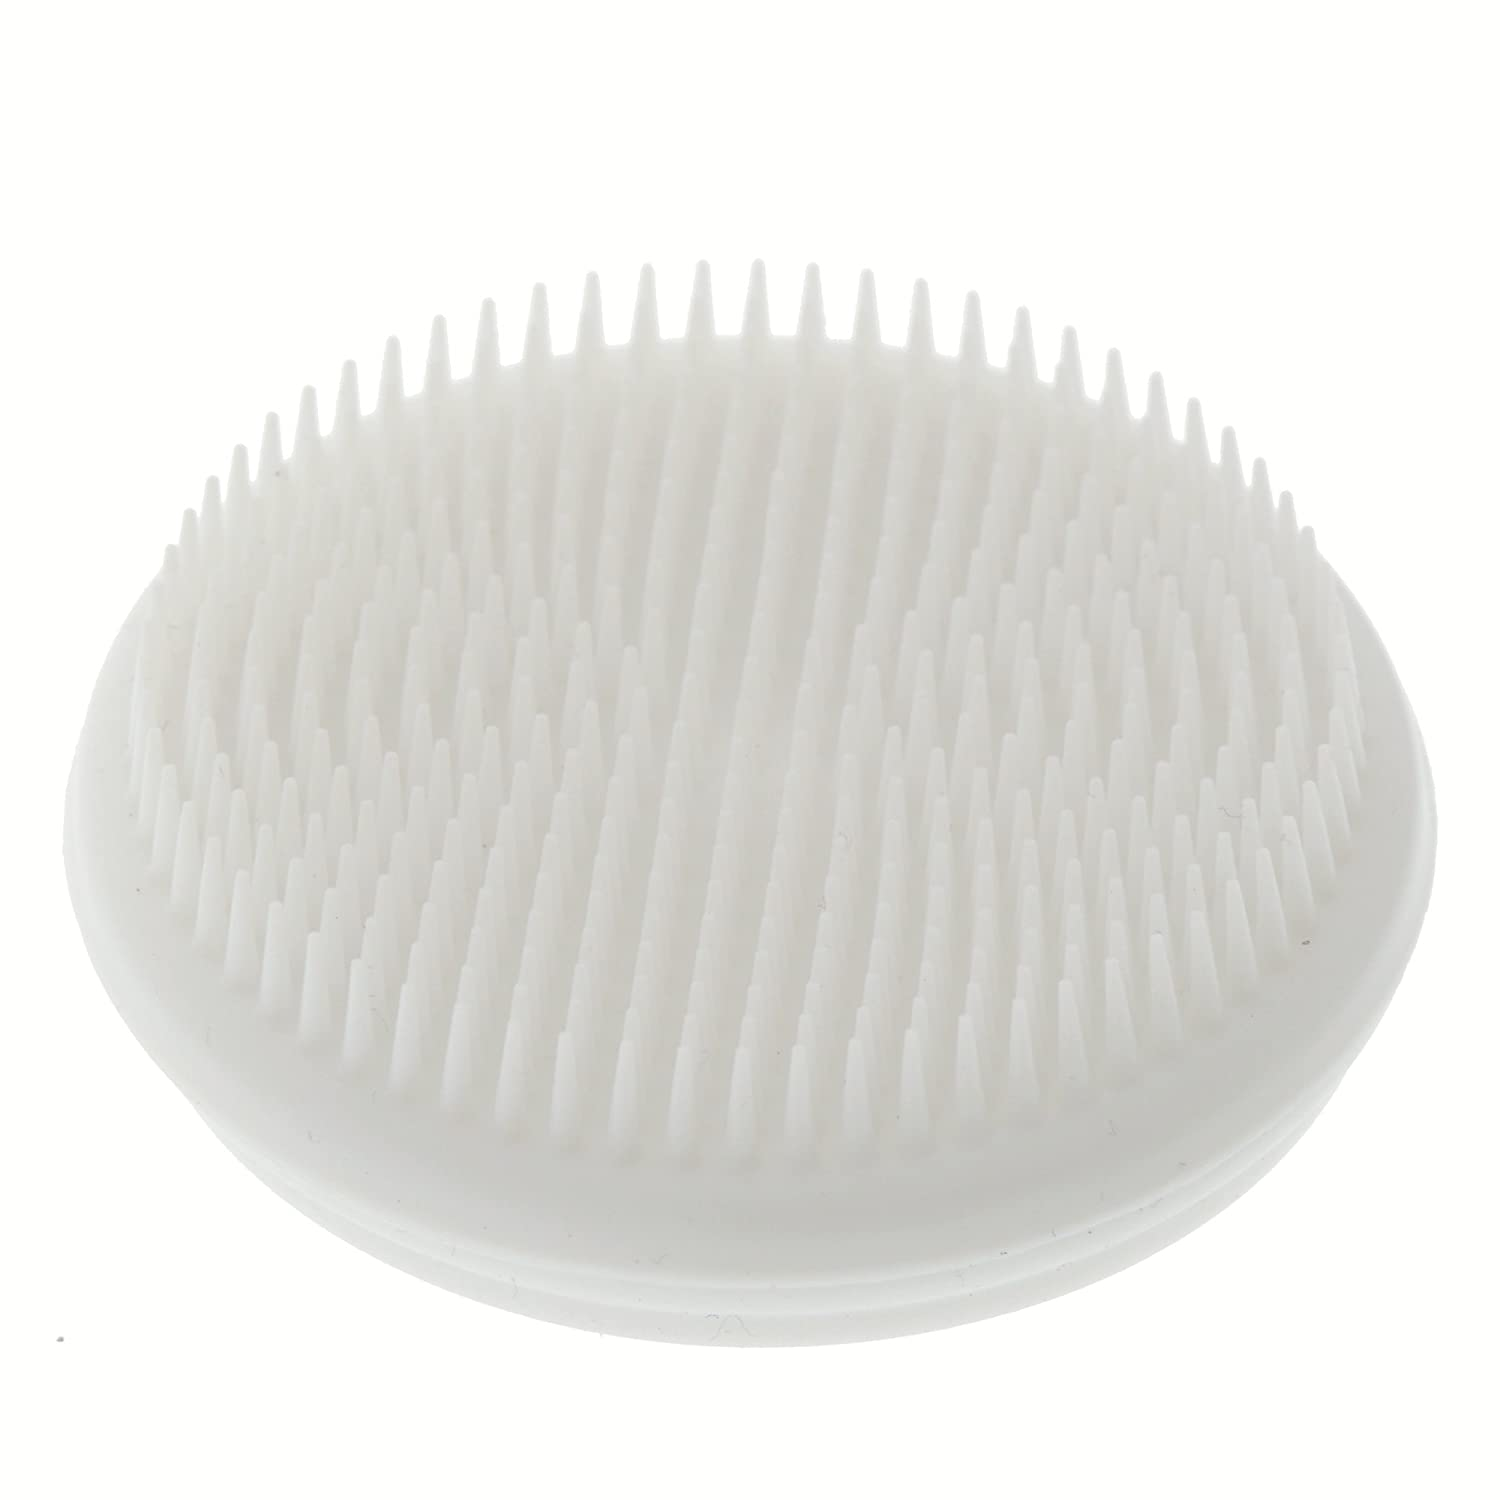 My Life My Shop Ultimate Spin Replacement Brush Silicone Head - On-the-Go Daily Facial Cleansing Tool